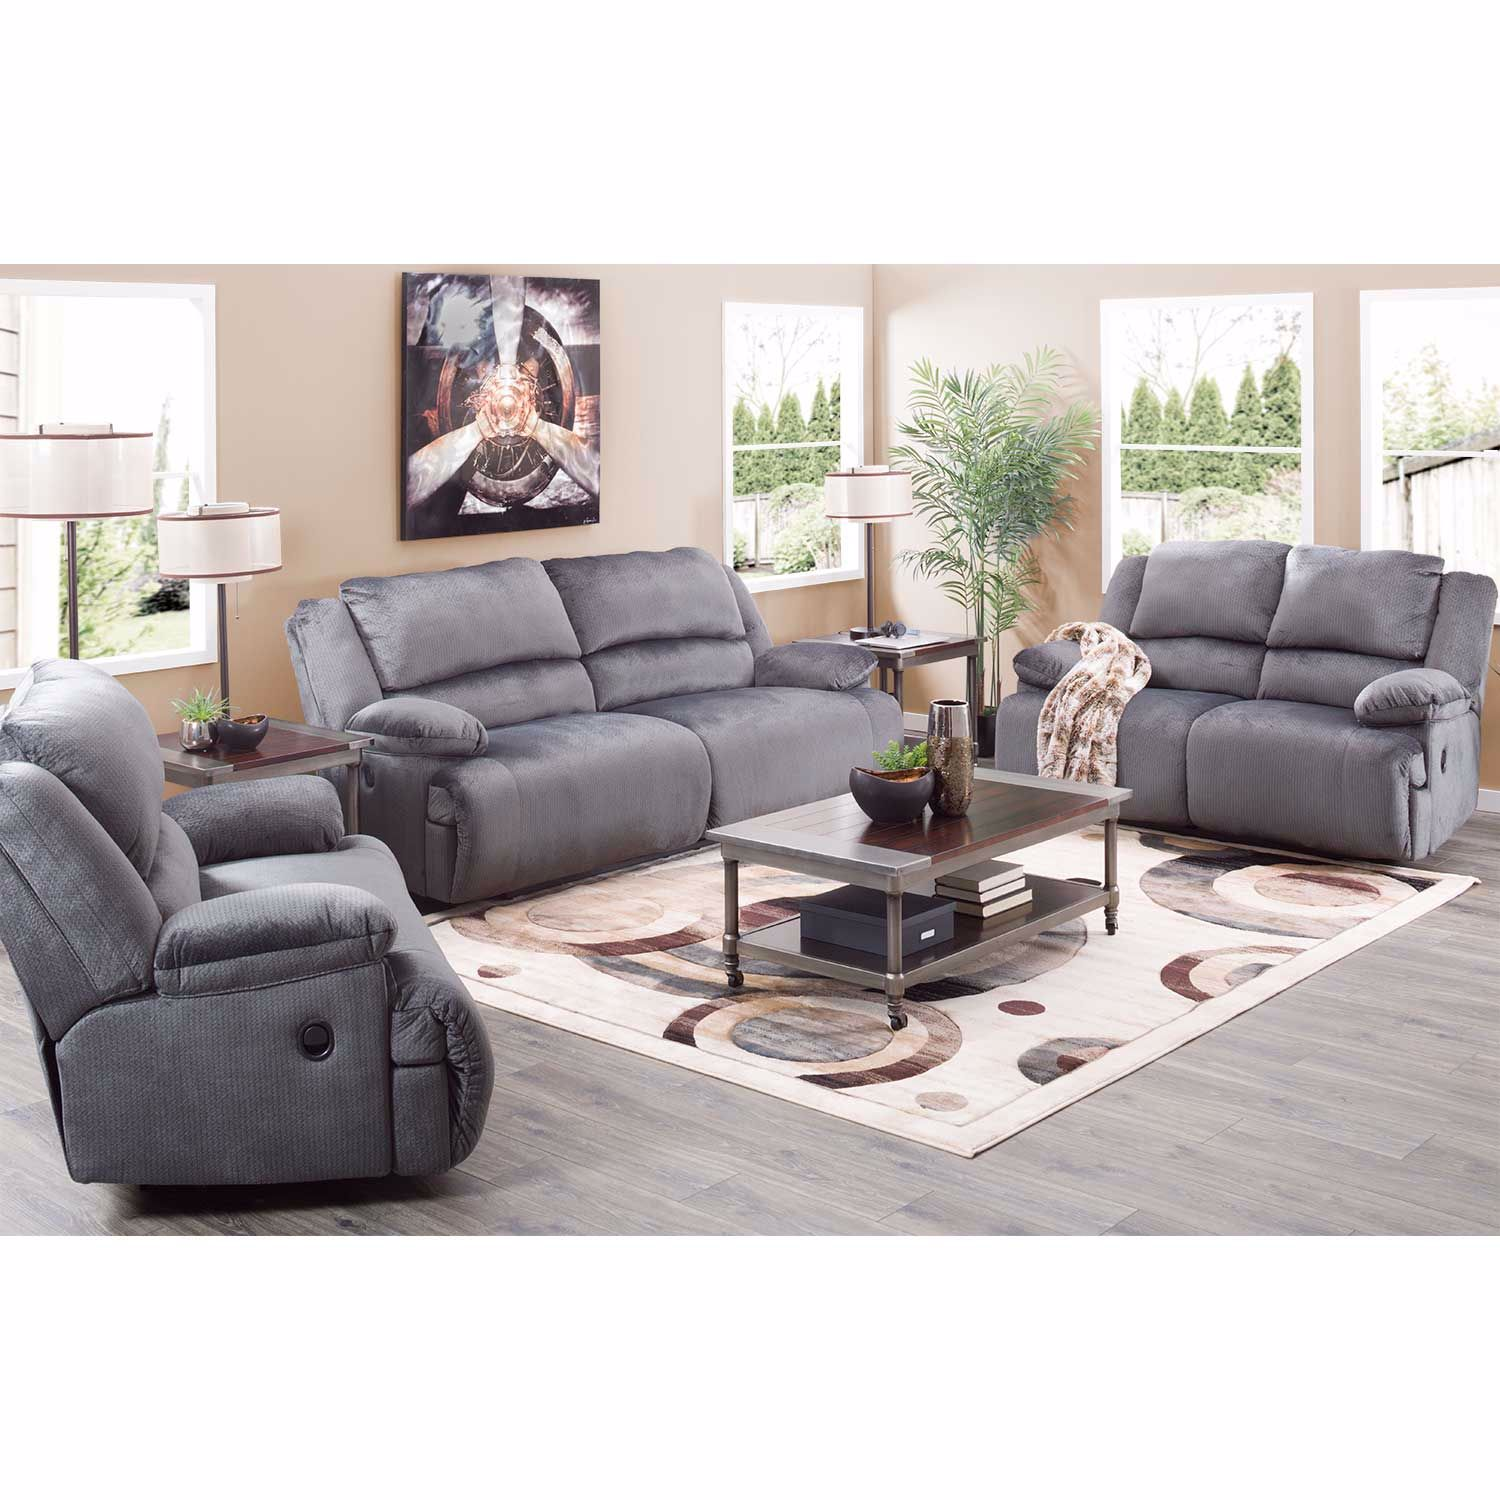 Picture of Charcoal Power Reclining Sofa